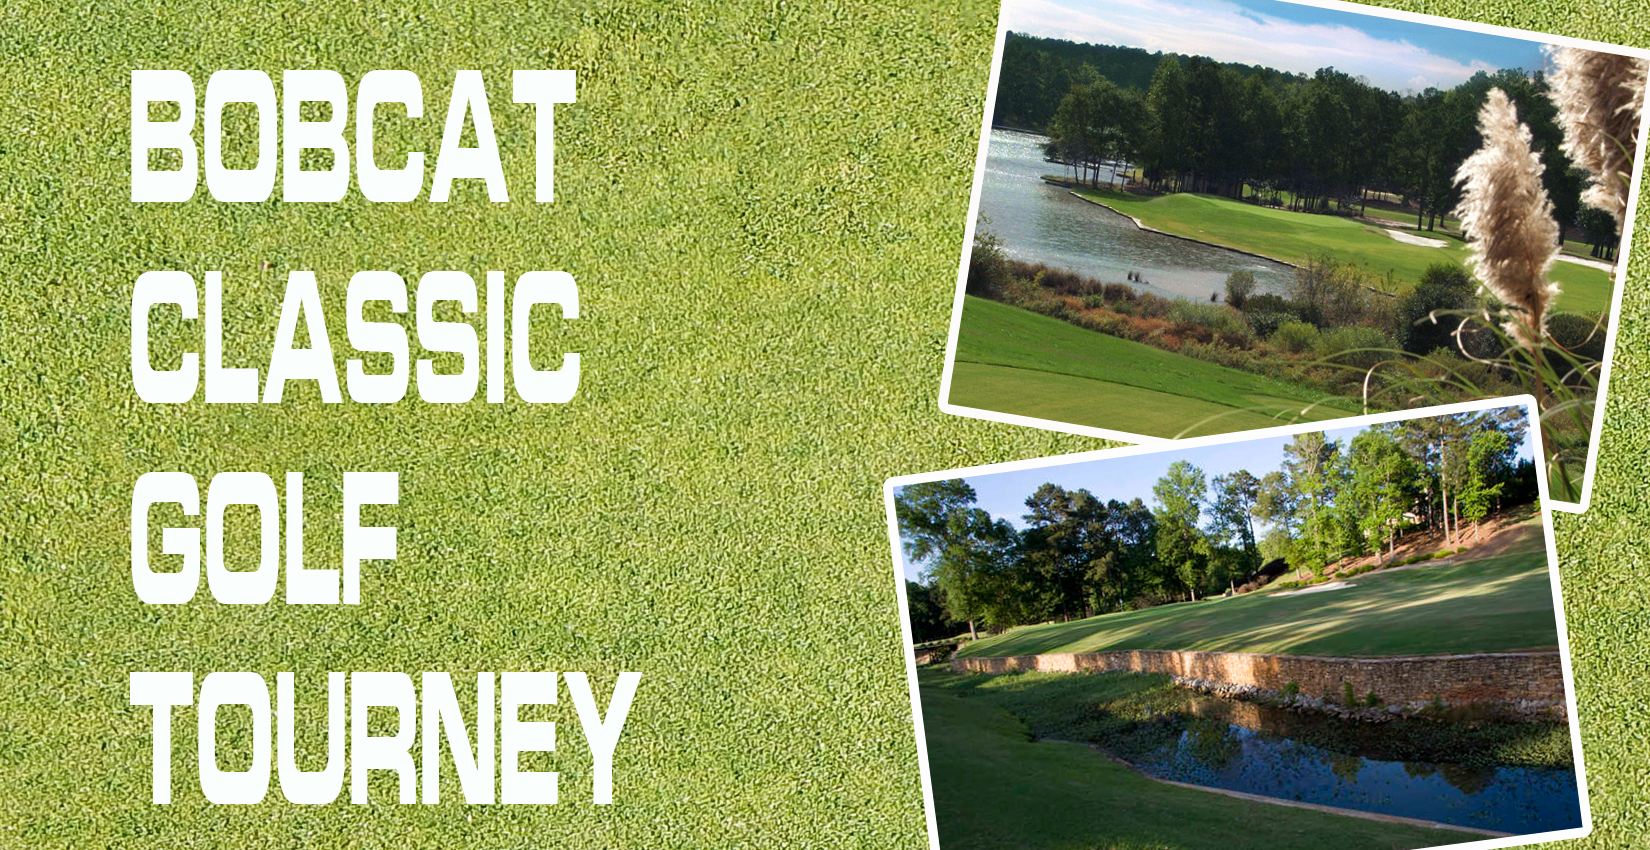 Registration Open for Sodexo Bobcat Classic Golf Fundraiser